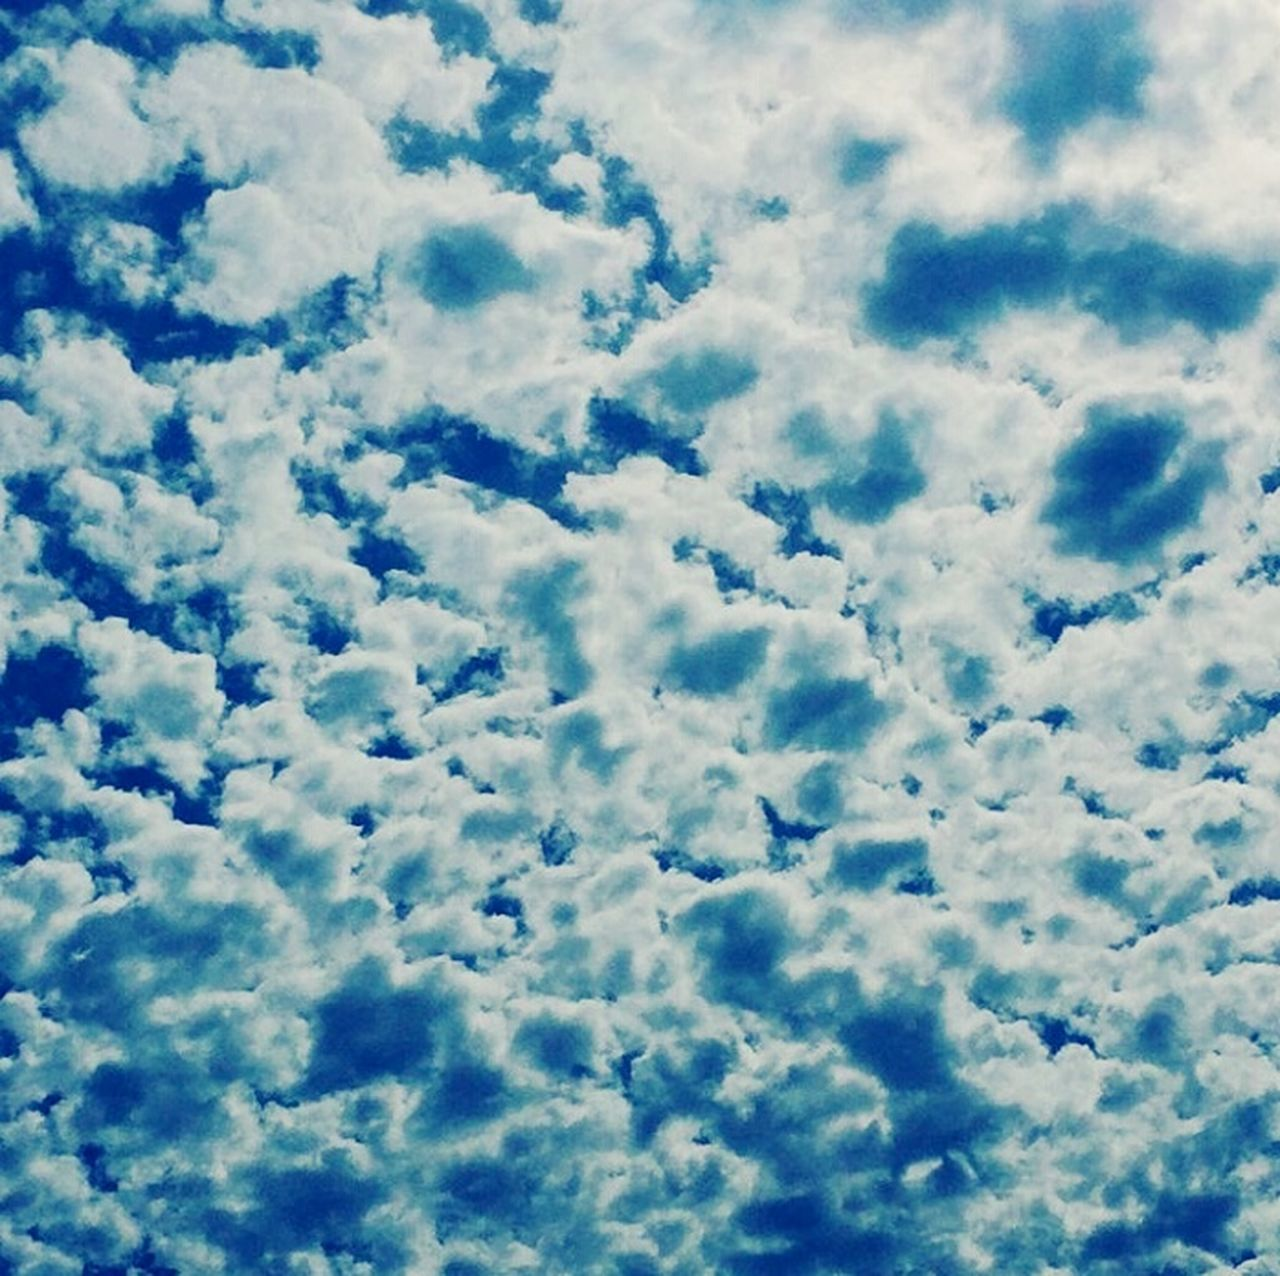 cloud - sky, nature, backgrounds, sky, beauty in nature, cloudscape, softness, sky only, full frame, low angle view, heaven, no people, blue, tranquility, scenics, white color, outdoors, day